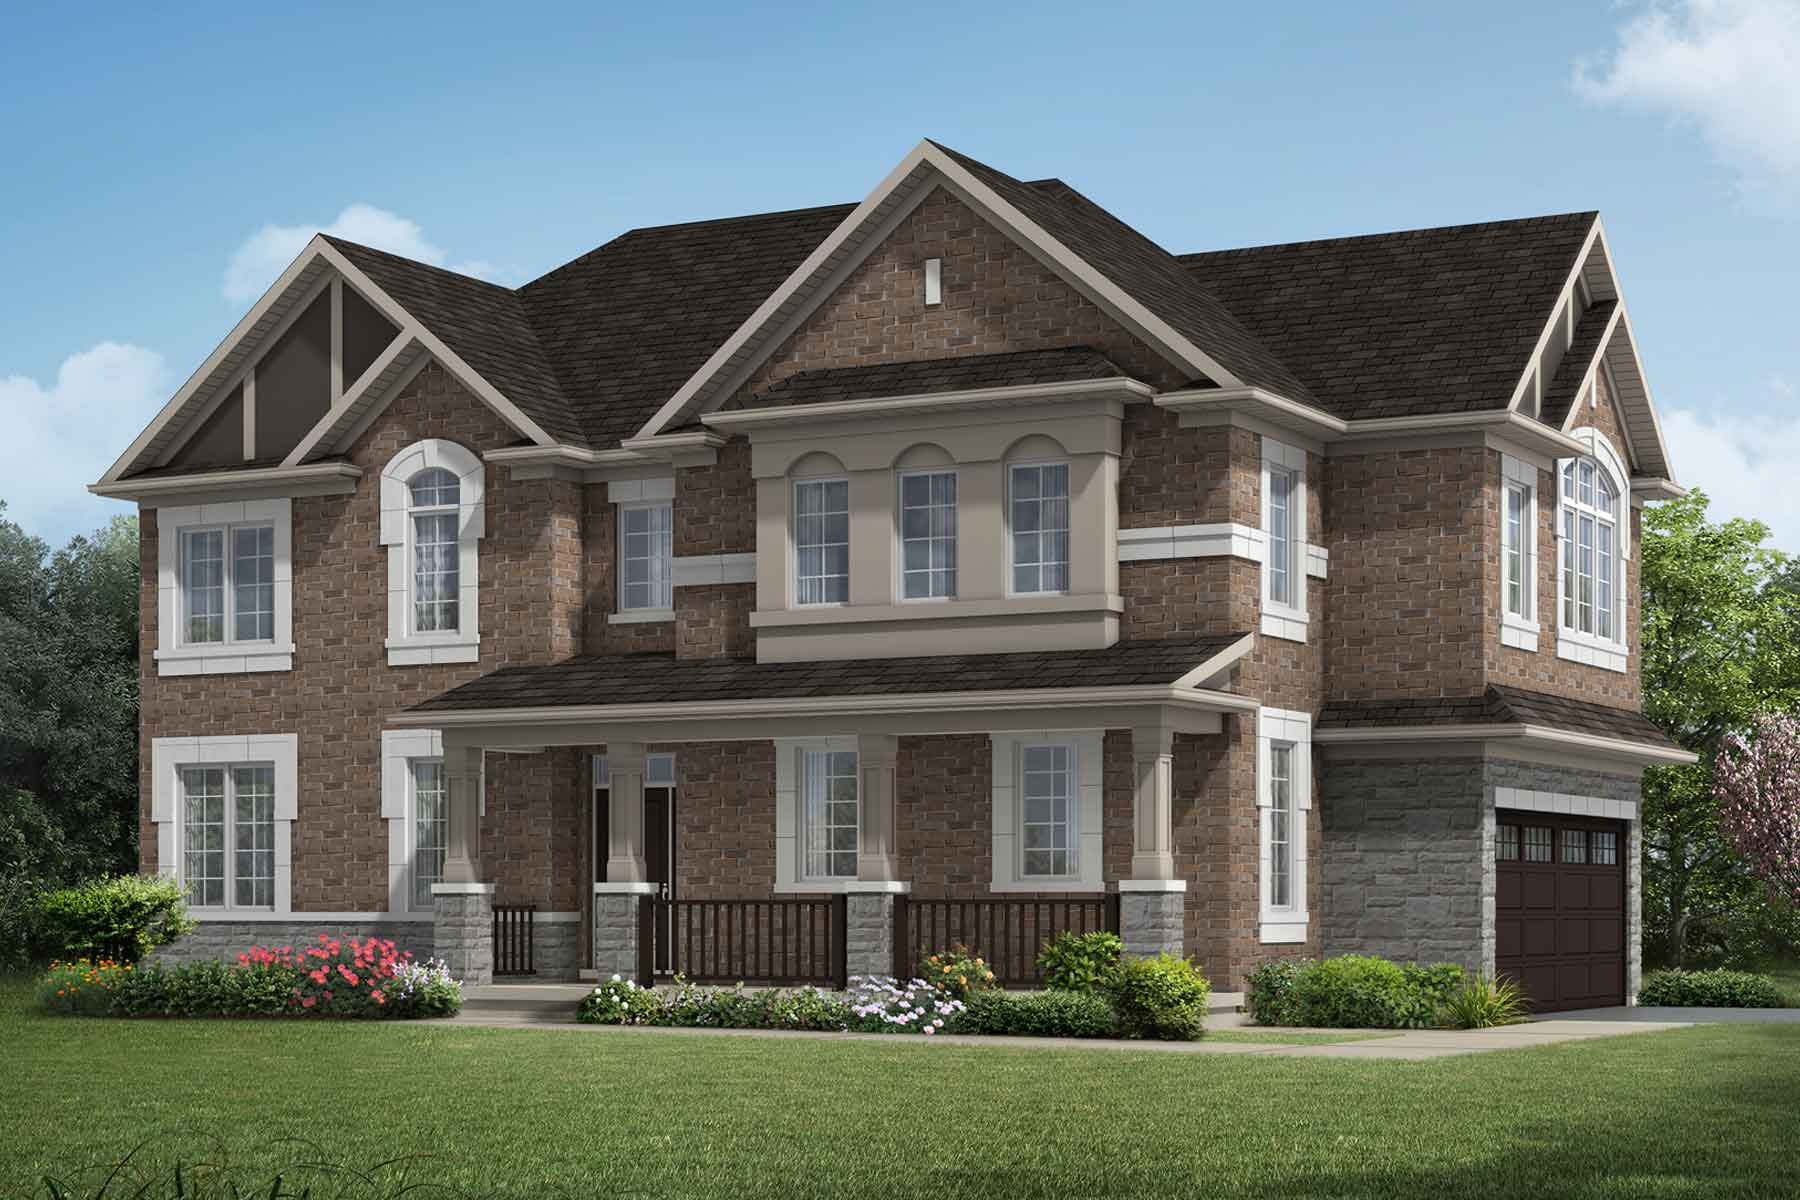 Wildflower Crossing traditional_southestates_courtlandcorner_main in Kitchener Ontario by Mattamy Homes